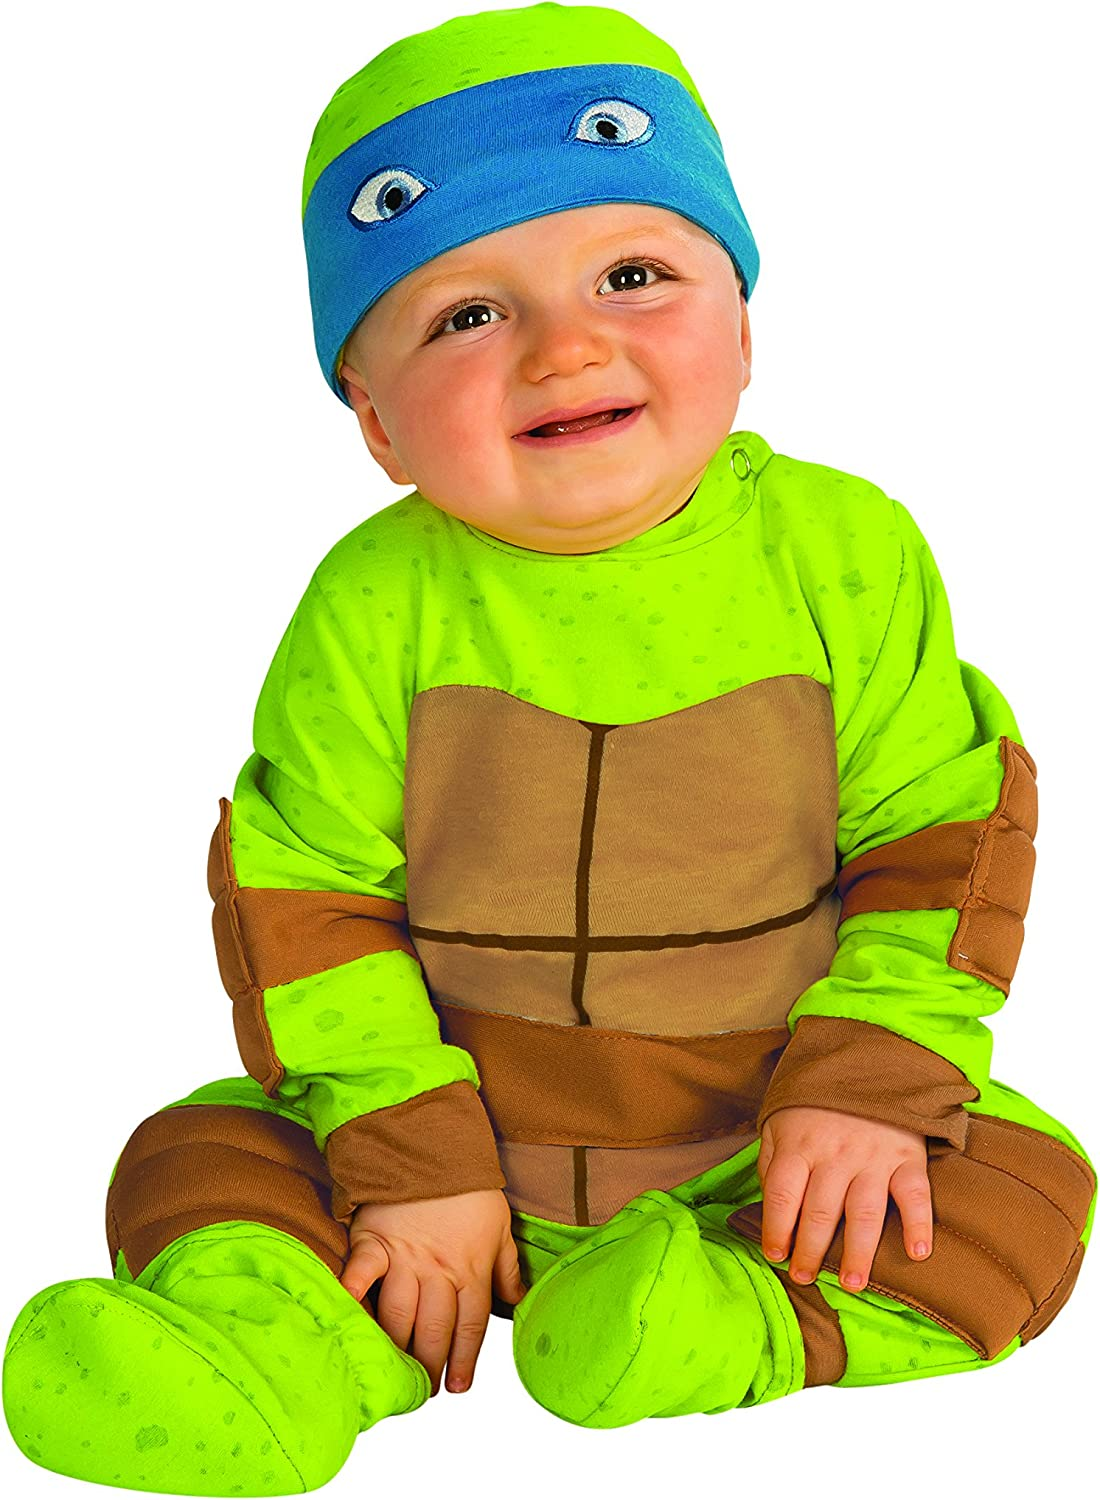 Teenage Mutant Ninja Turtles Animated Series Costume